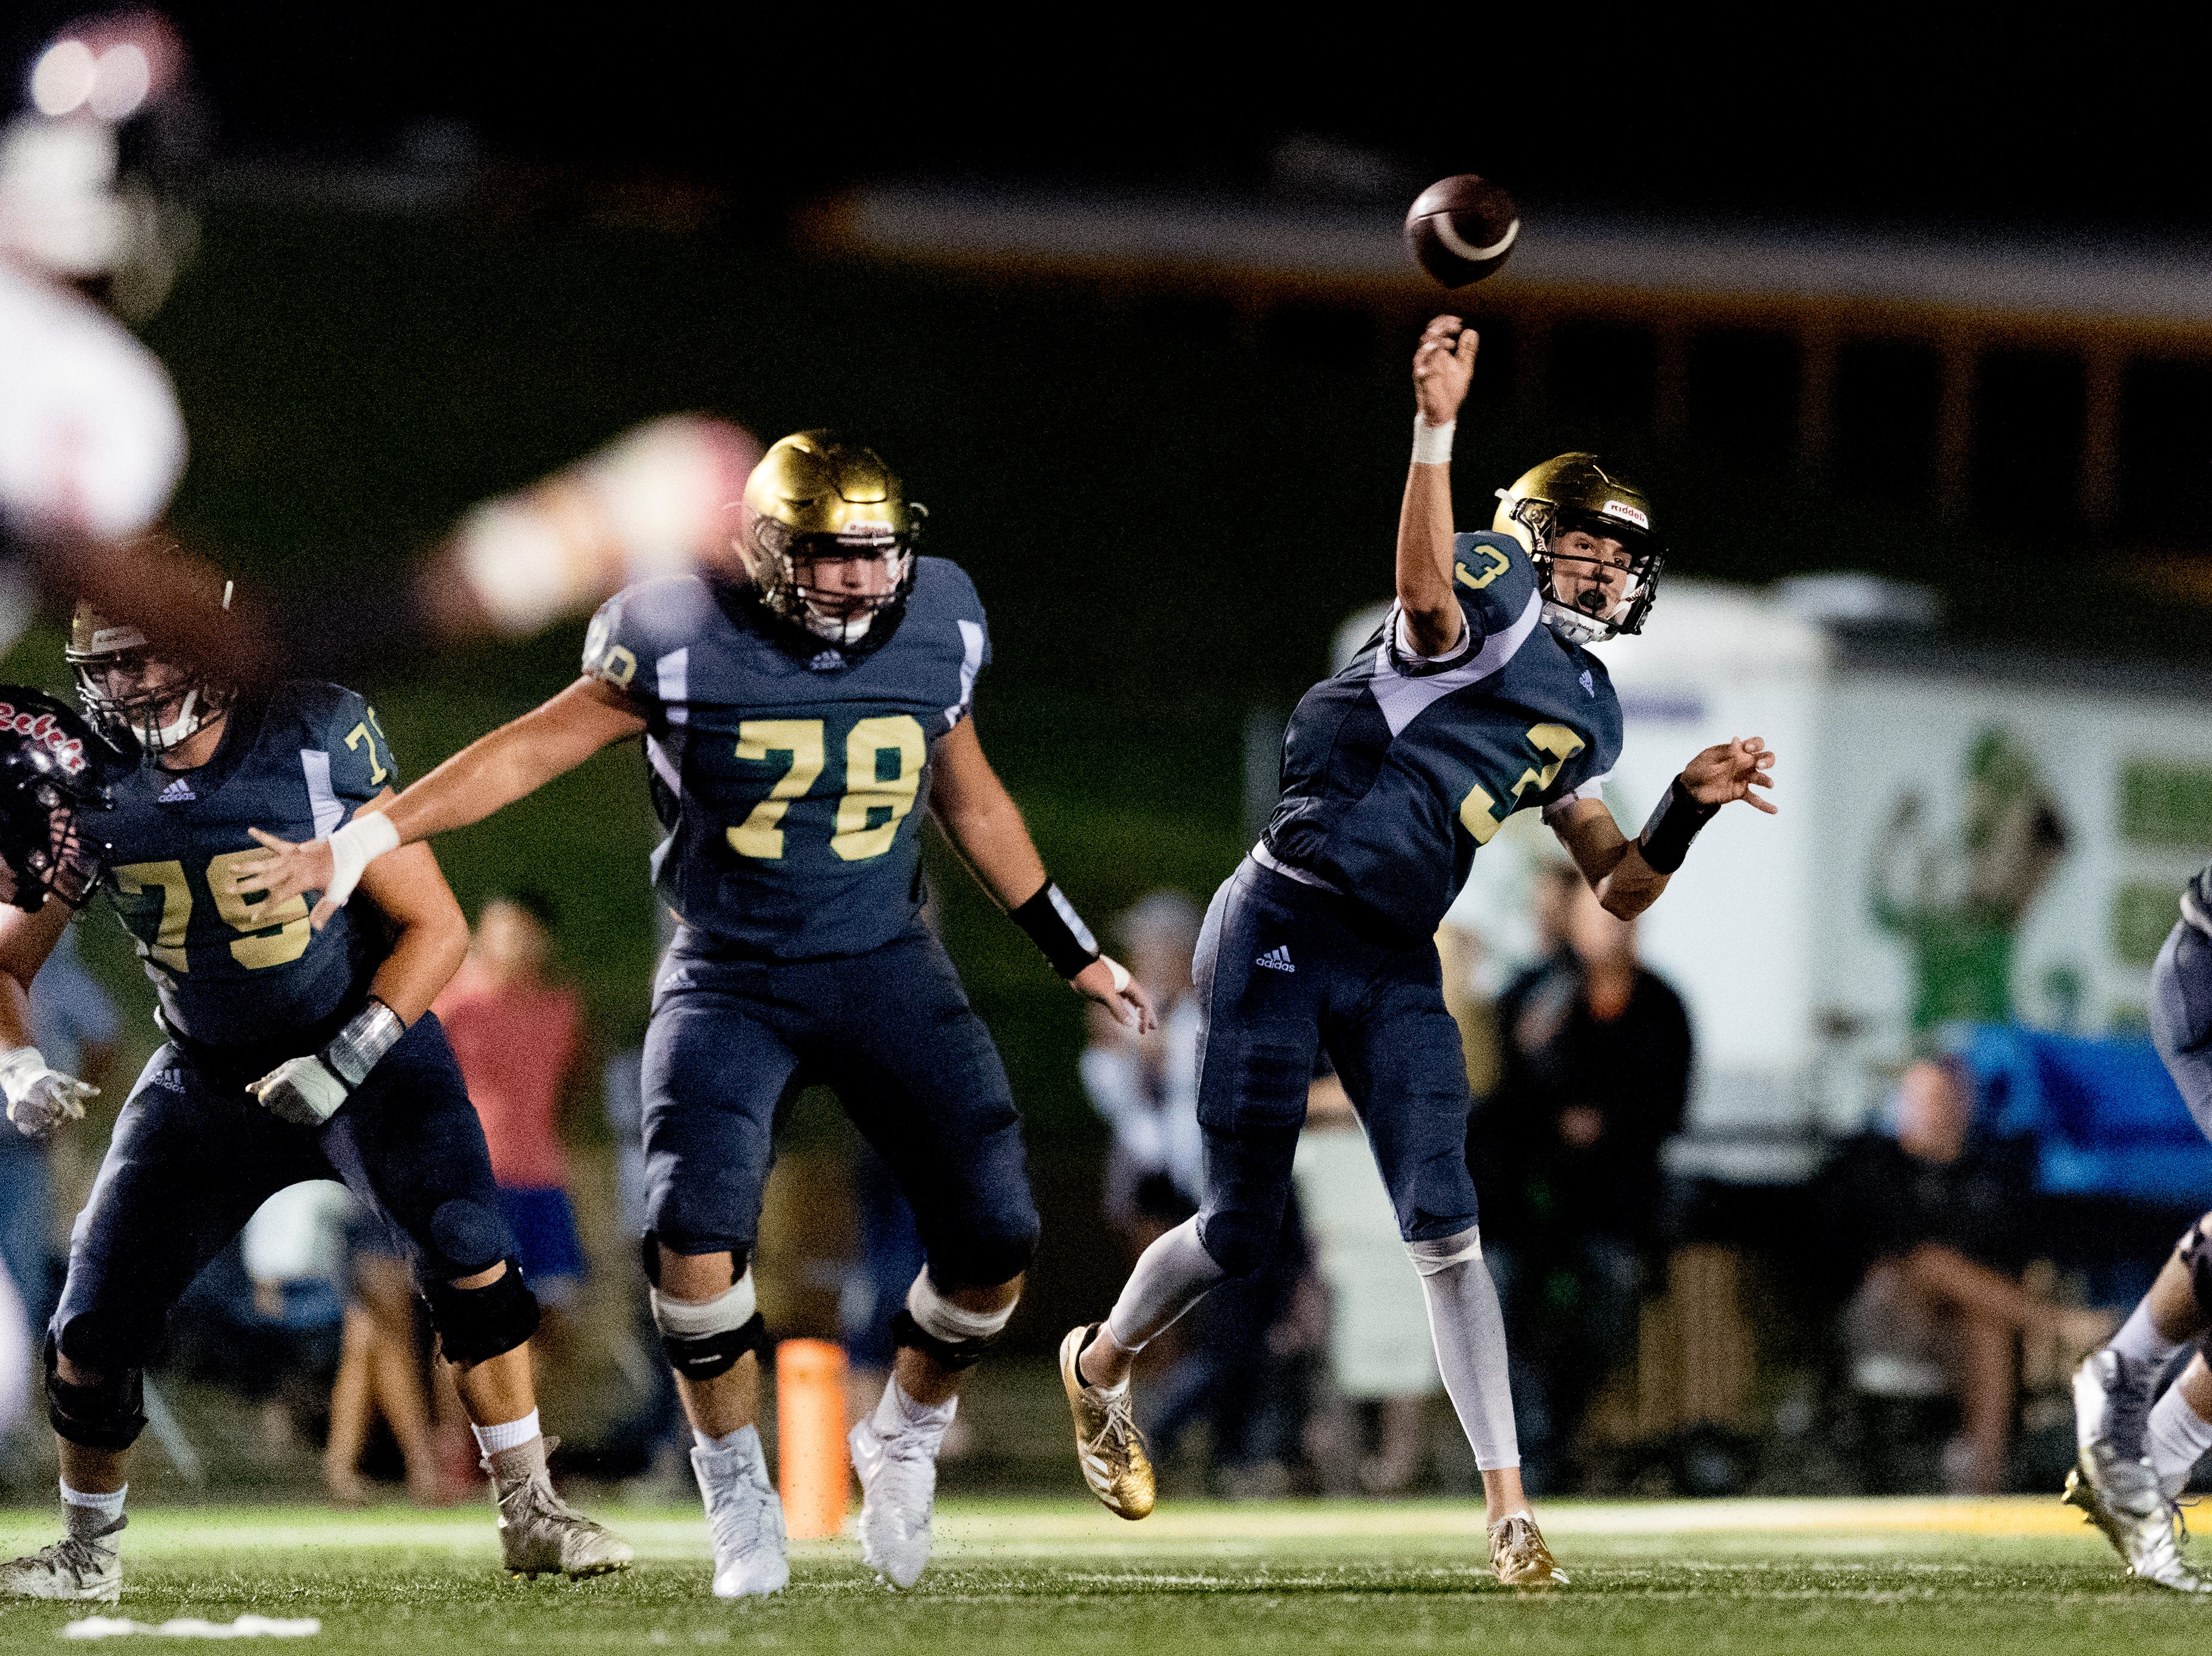 Catholic's Jack Jancek (3) throws the ball during a football game between Maryville and Catholic at Catholic High School in Knoxville, Tennessee on Friday, August 17, 2018.